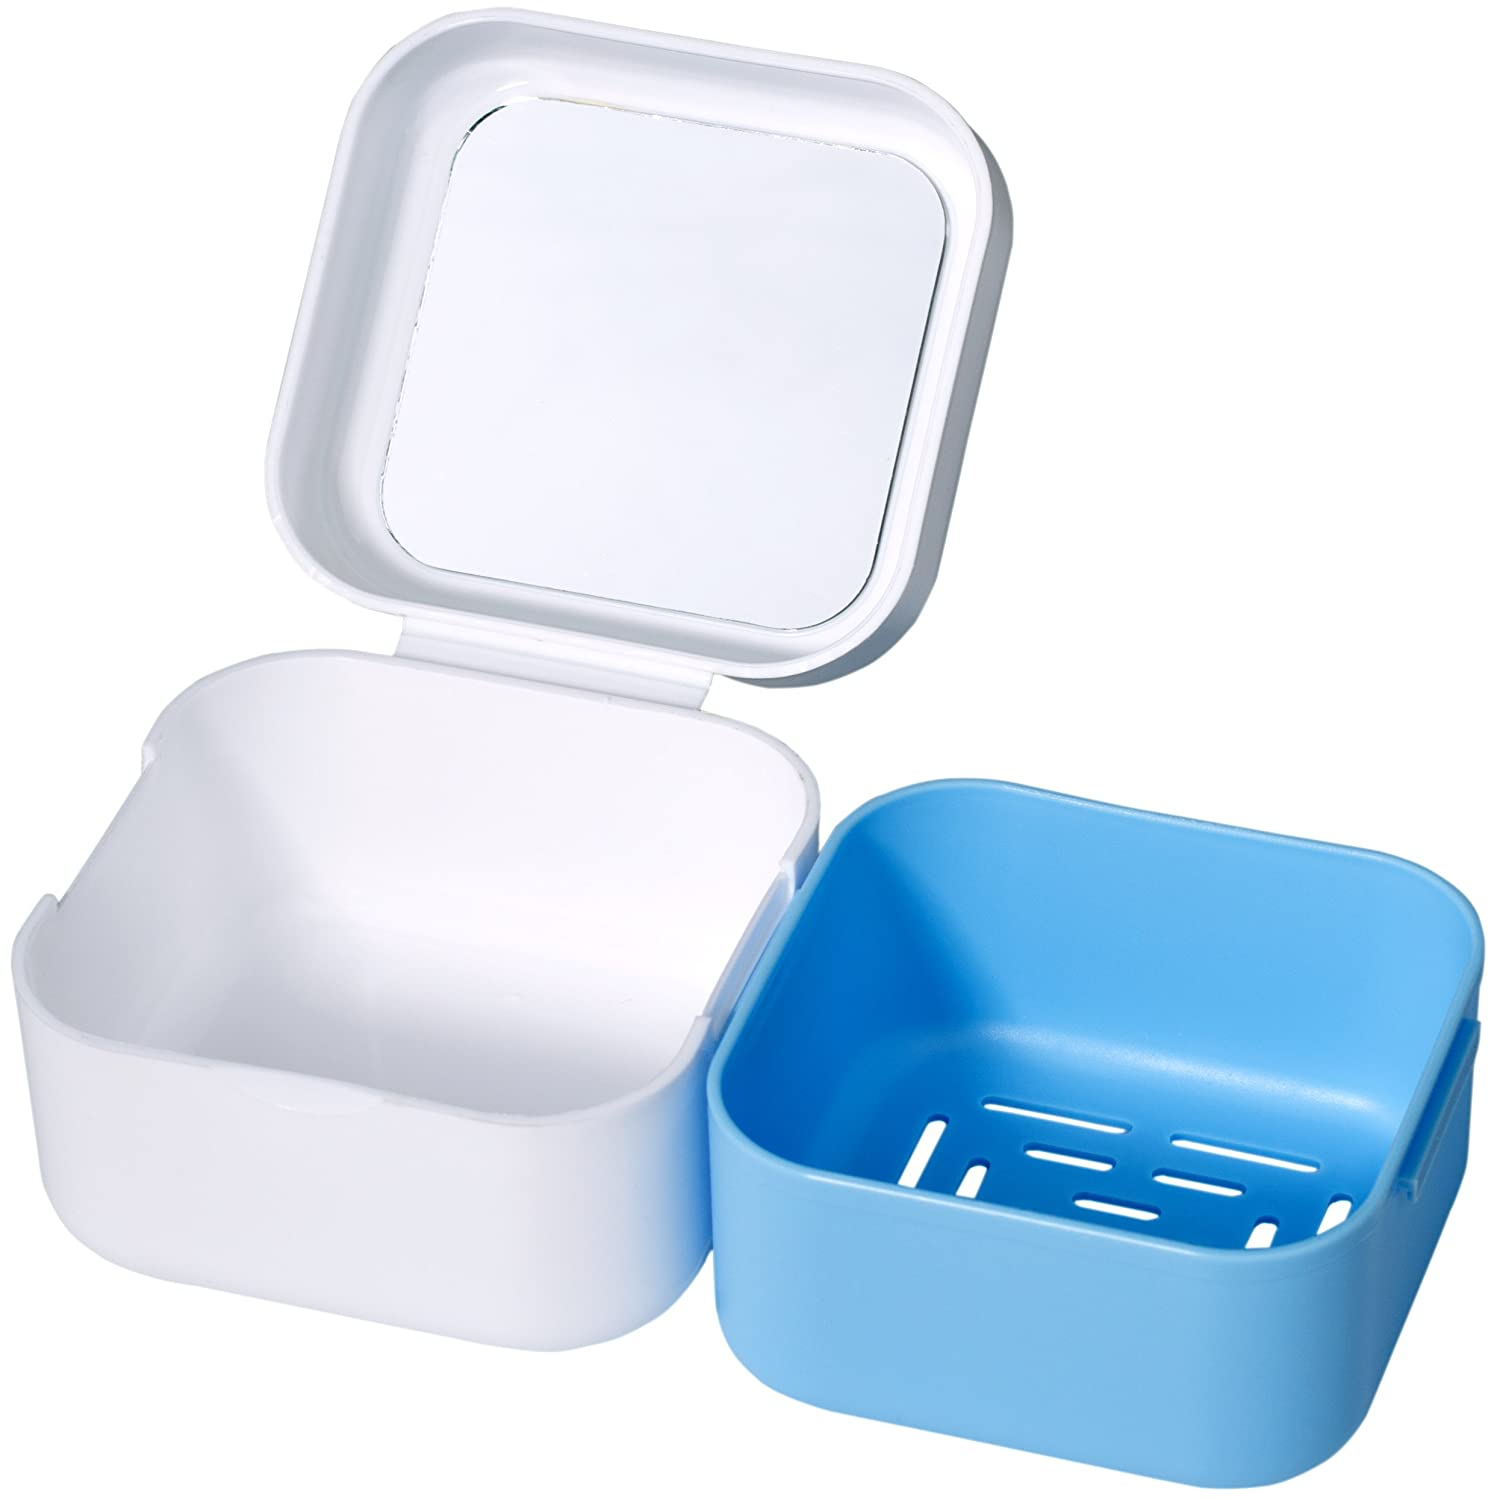 Denture Case with Strainer  Medokare Denture Cup with Lid and Mirror Dentures Box Dental Retainer